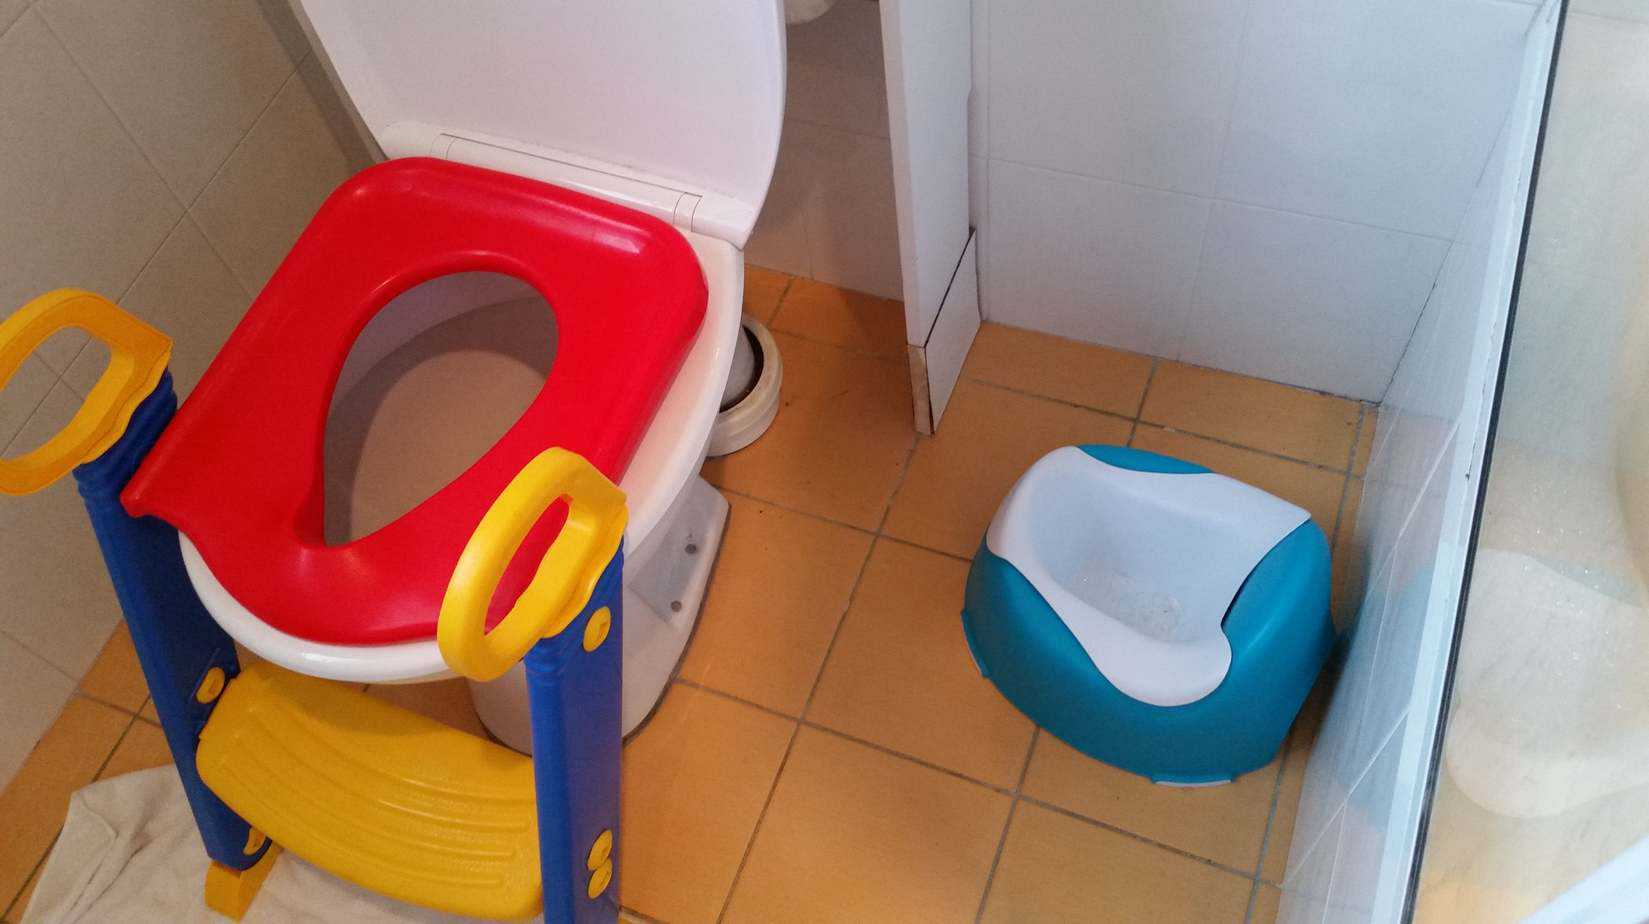 Toilet training setup, complete with stepping stool, potty for baby and towel to catch little leaks.